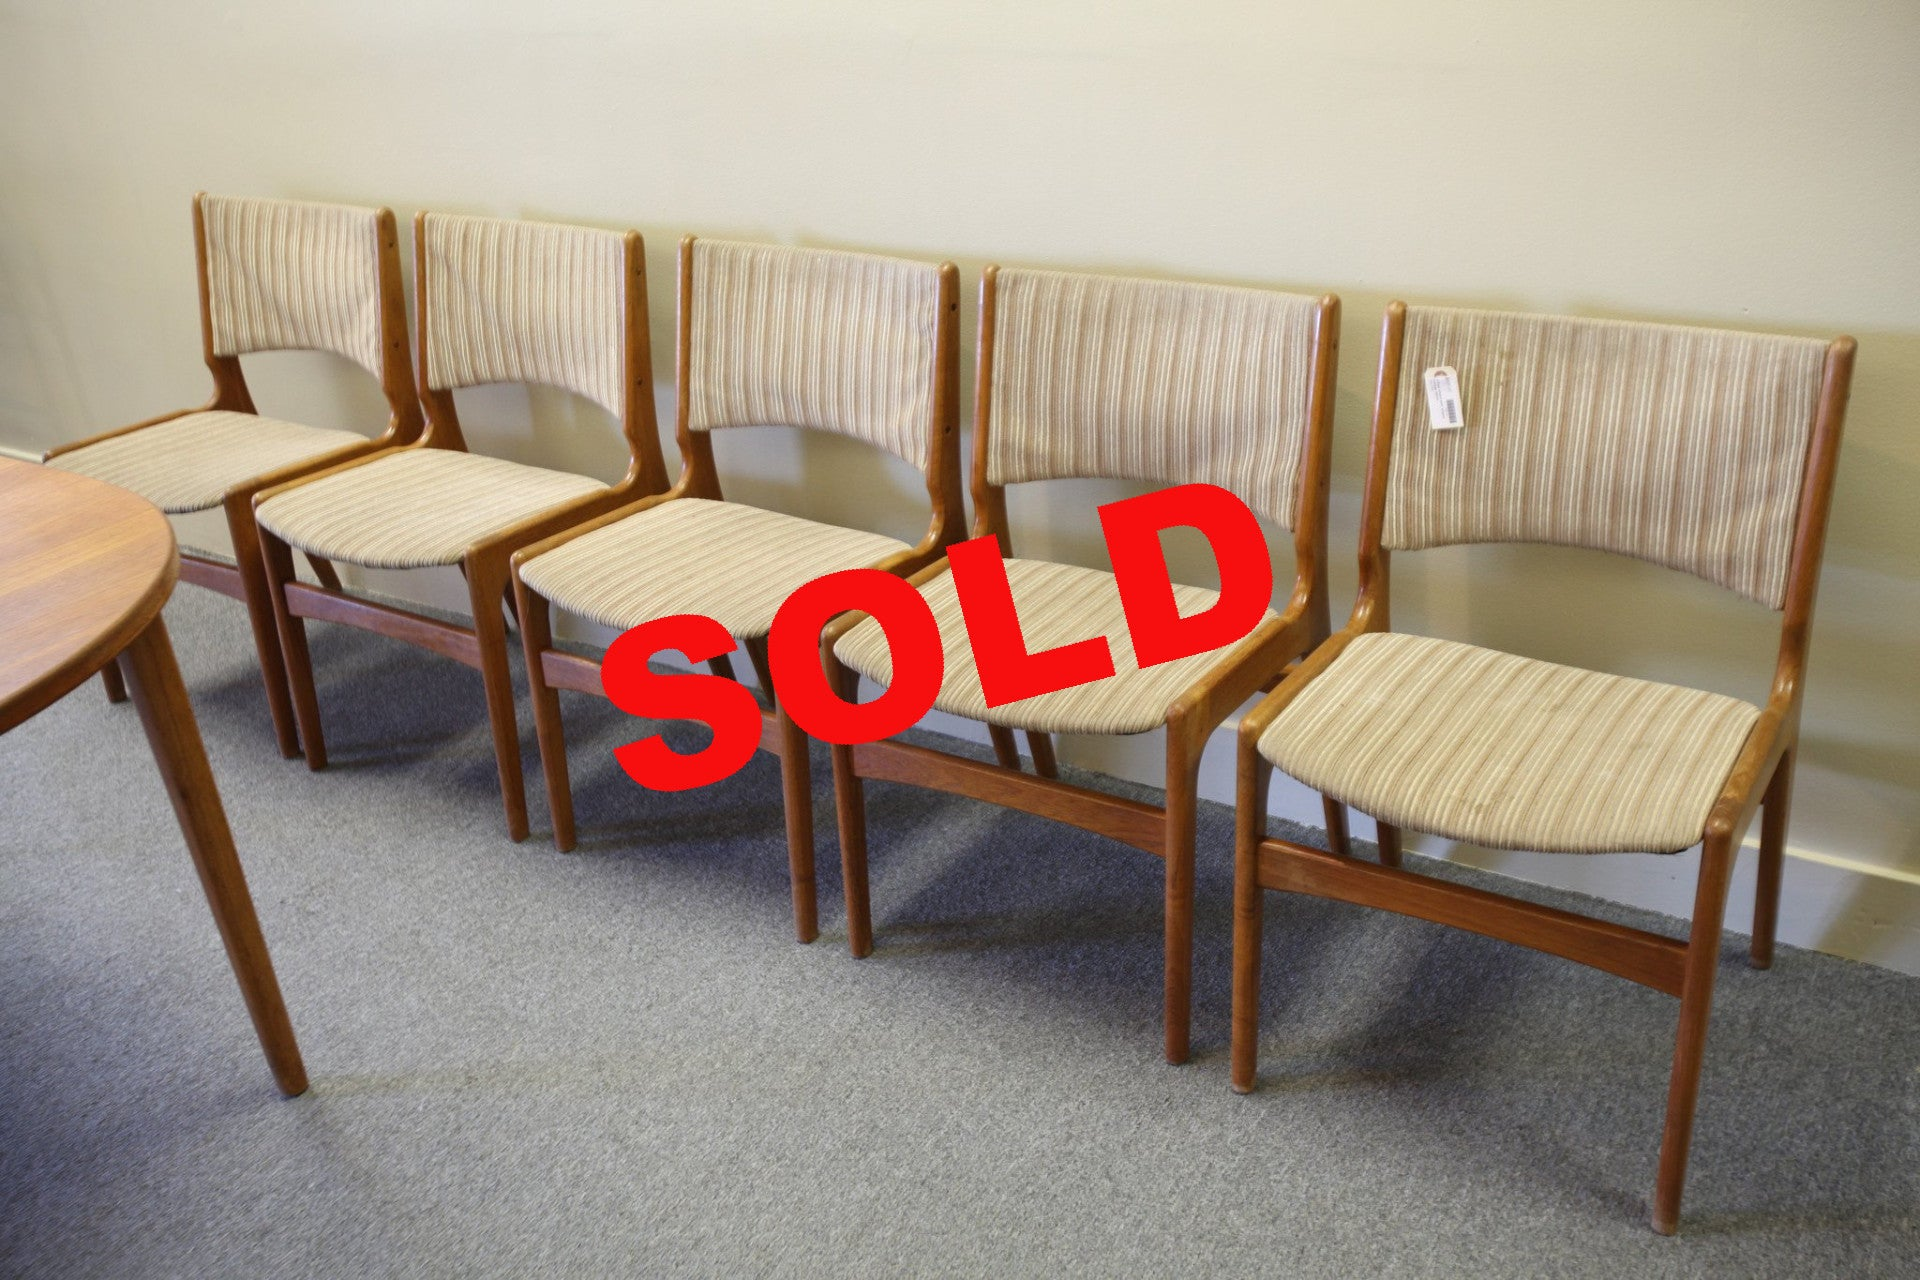 5 Teak Chairs with Striped fabric